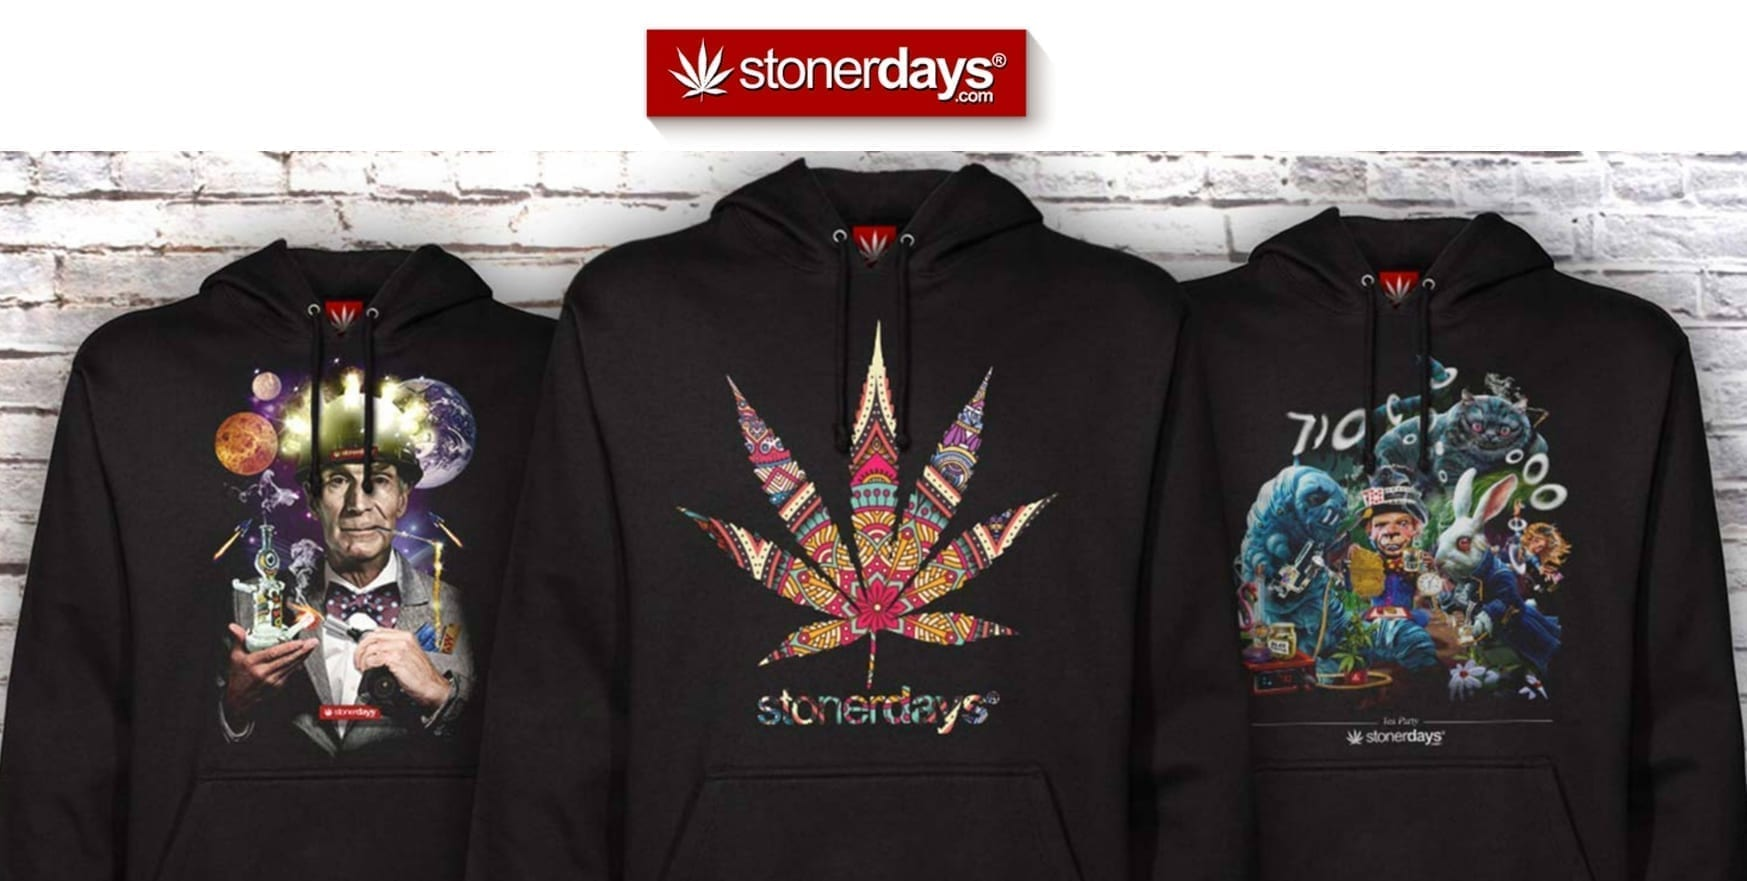 stonerdays sweaters